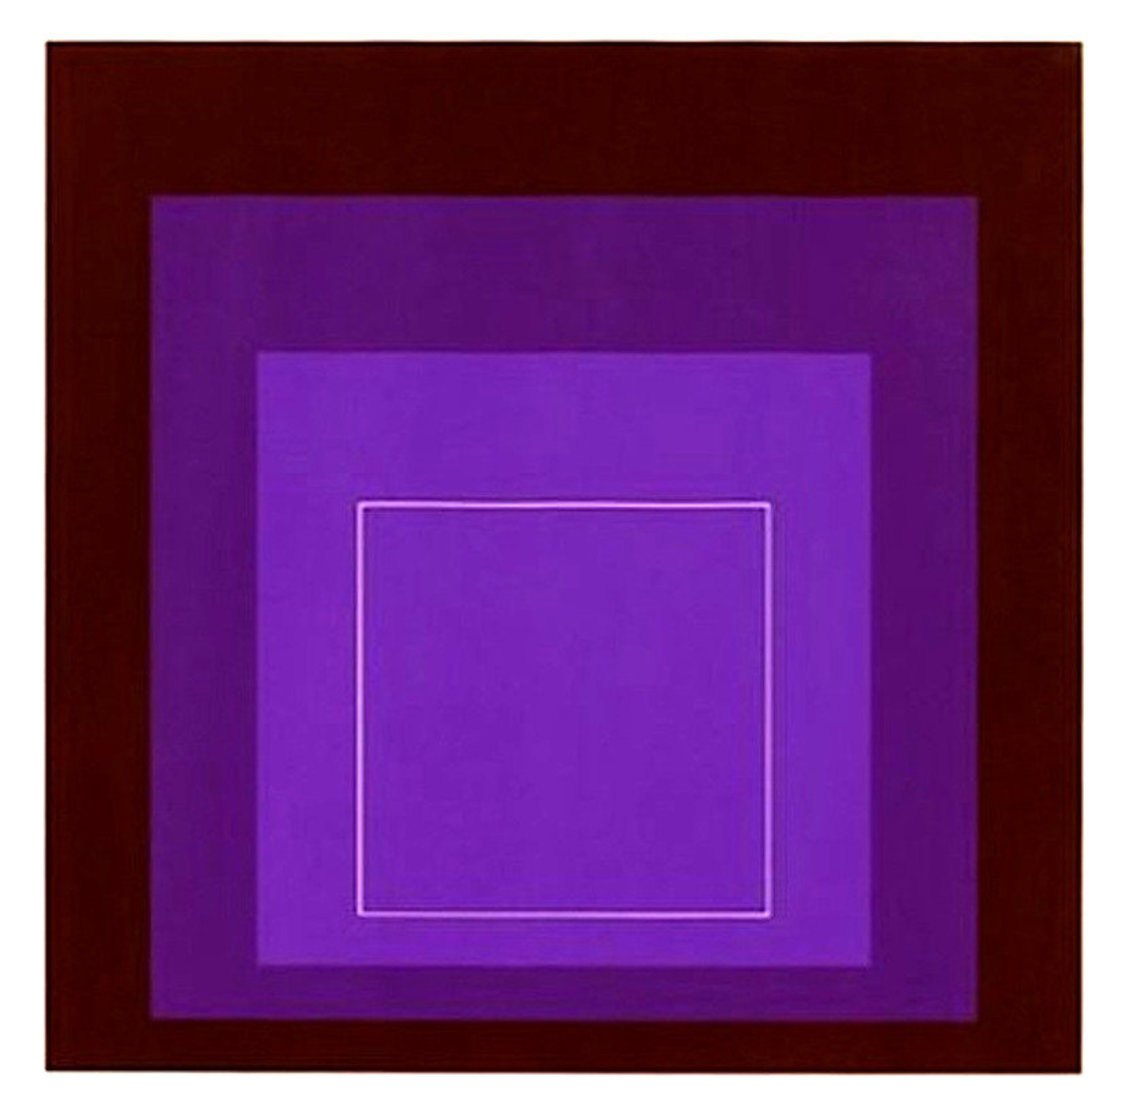 White Line Squares XI: Series II 1966 Limited Edition Print by Josef Albers